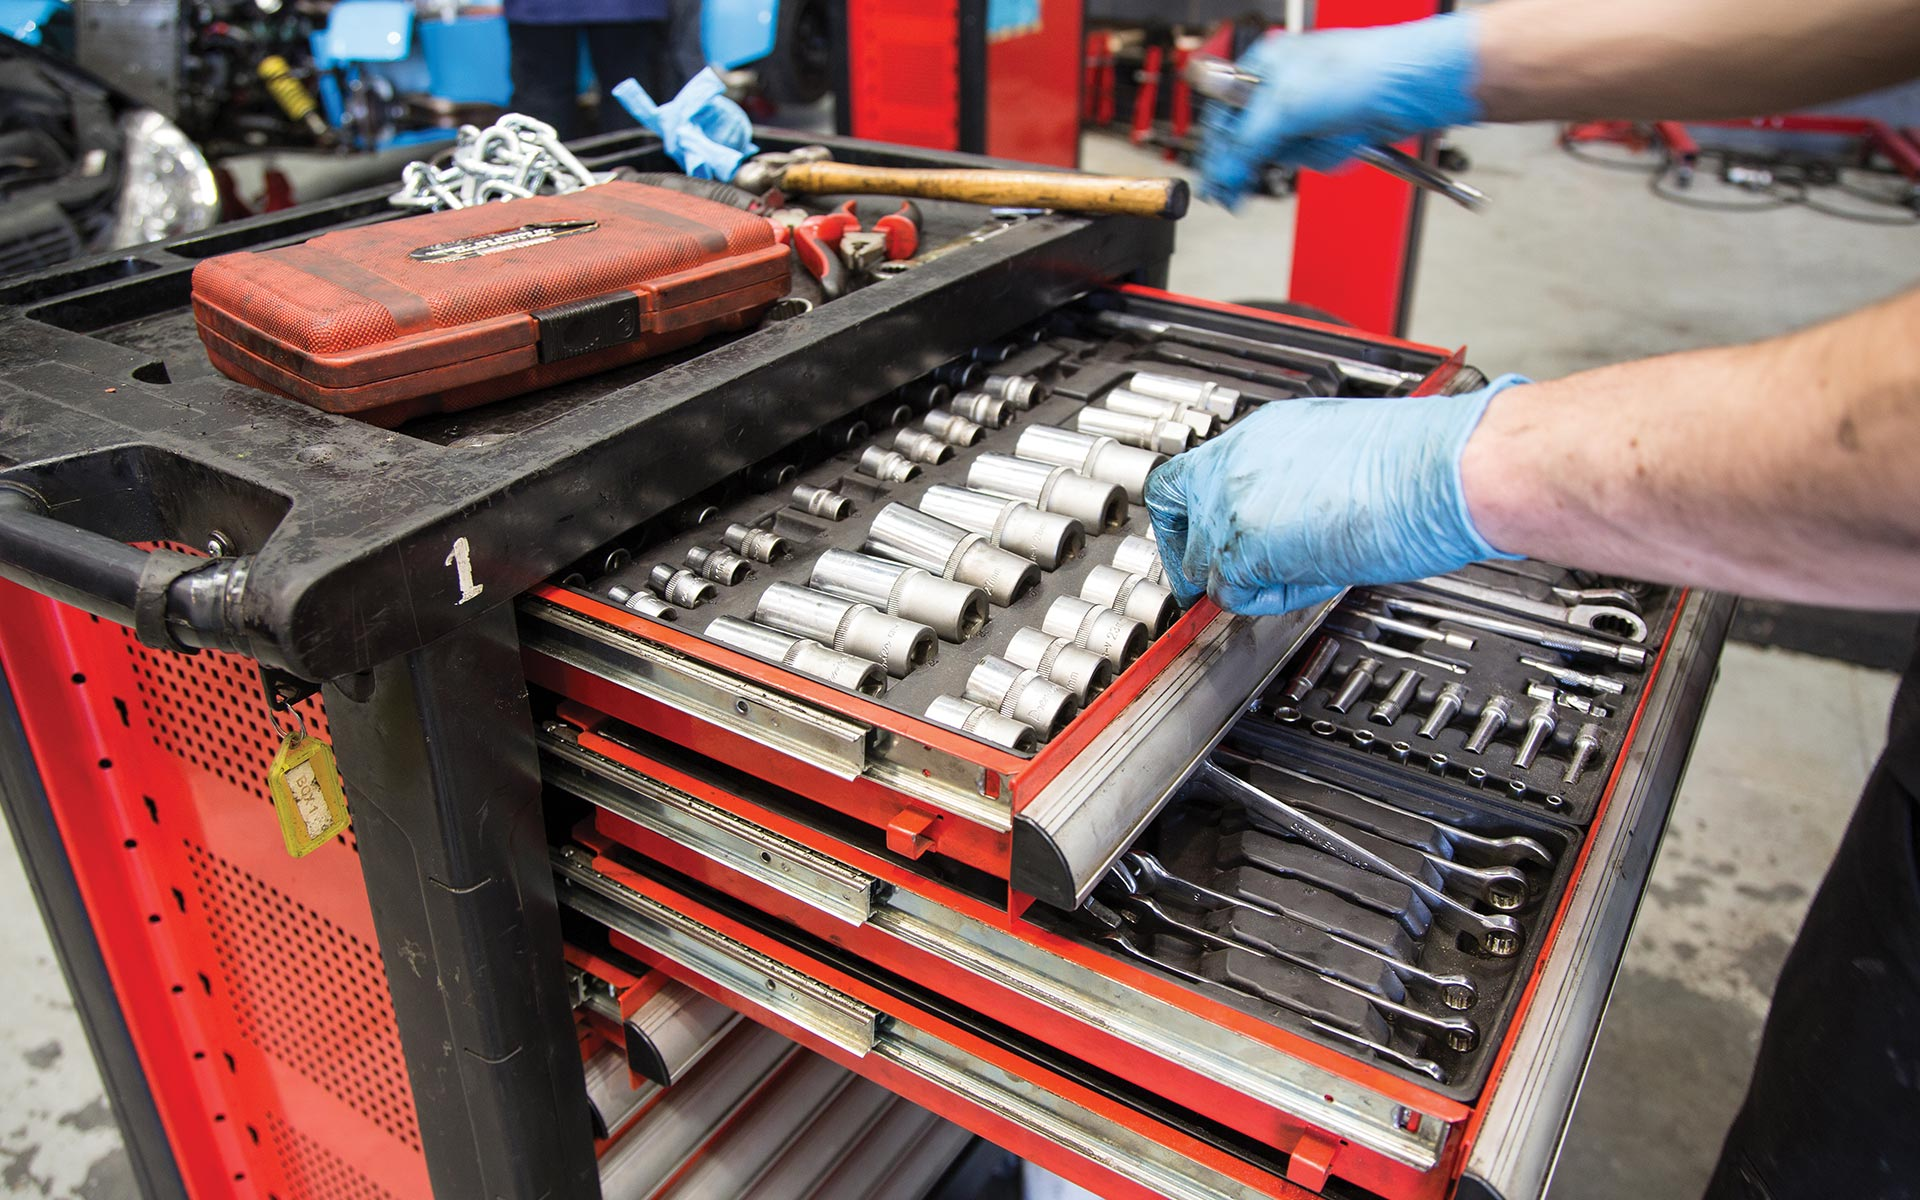 Our Automotive Training Centre is kitted out with industry standard snap on tools to help you perfect your skills.